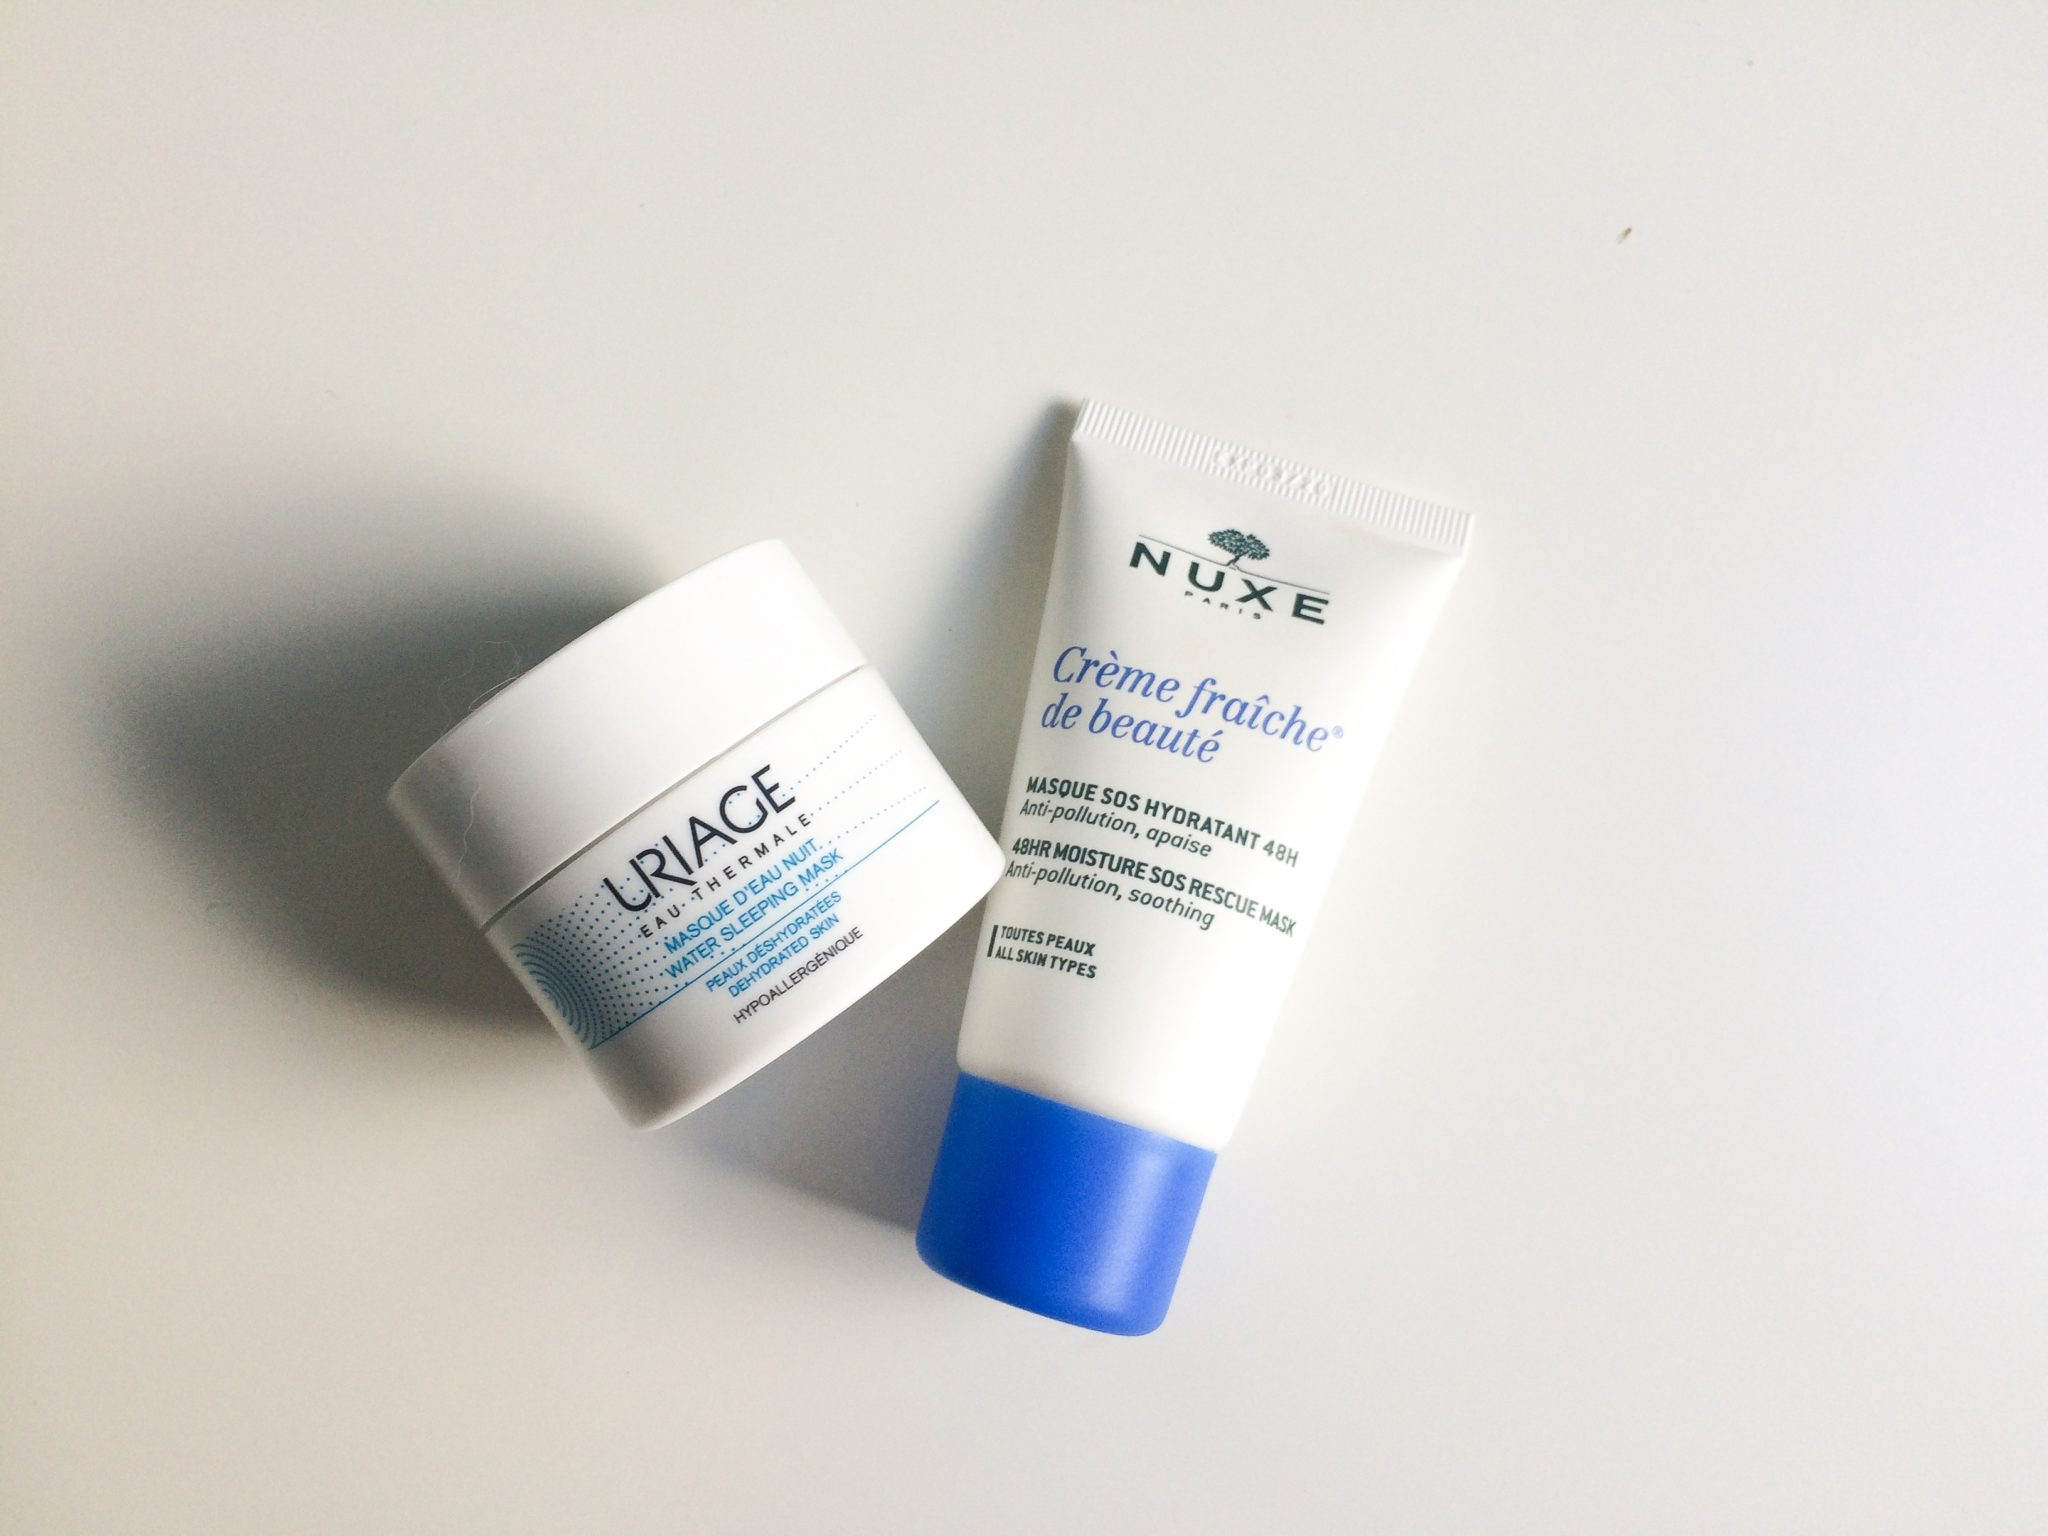 Uriage Water Night Mask and Nuxe Creme fraiche de beaute hydrating face mask review by beauty blogger Quite a Looker